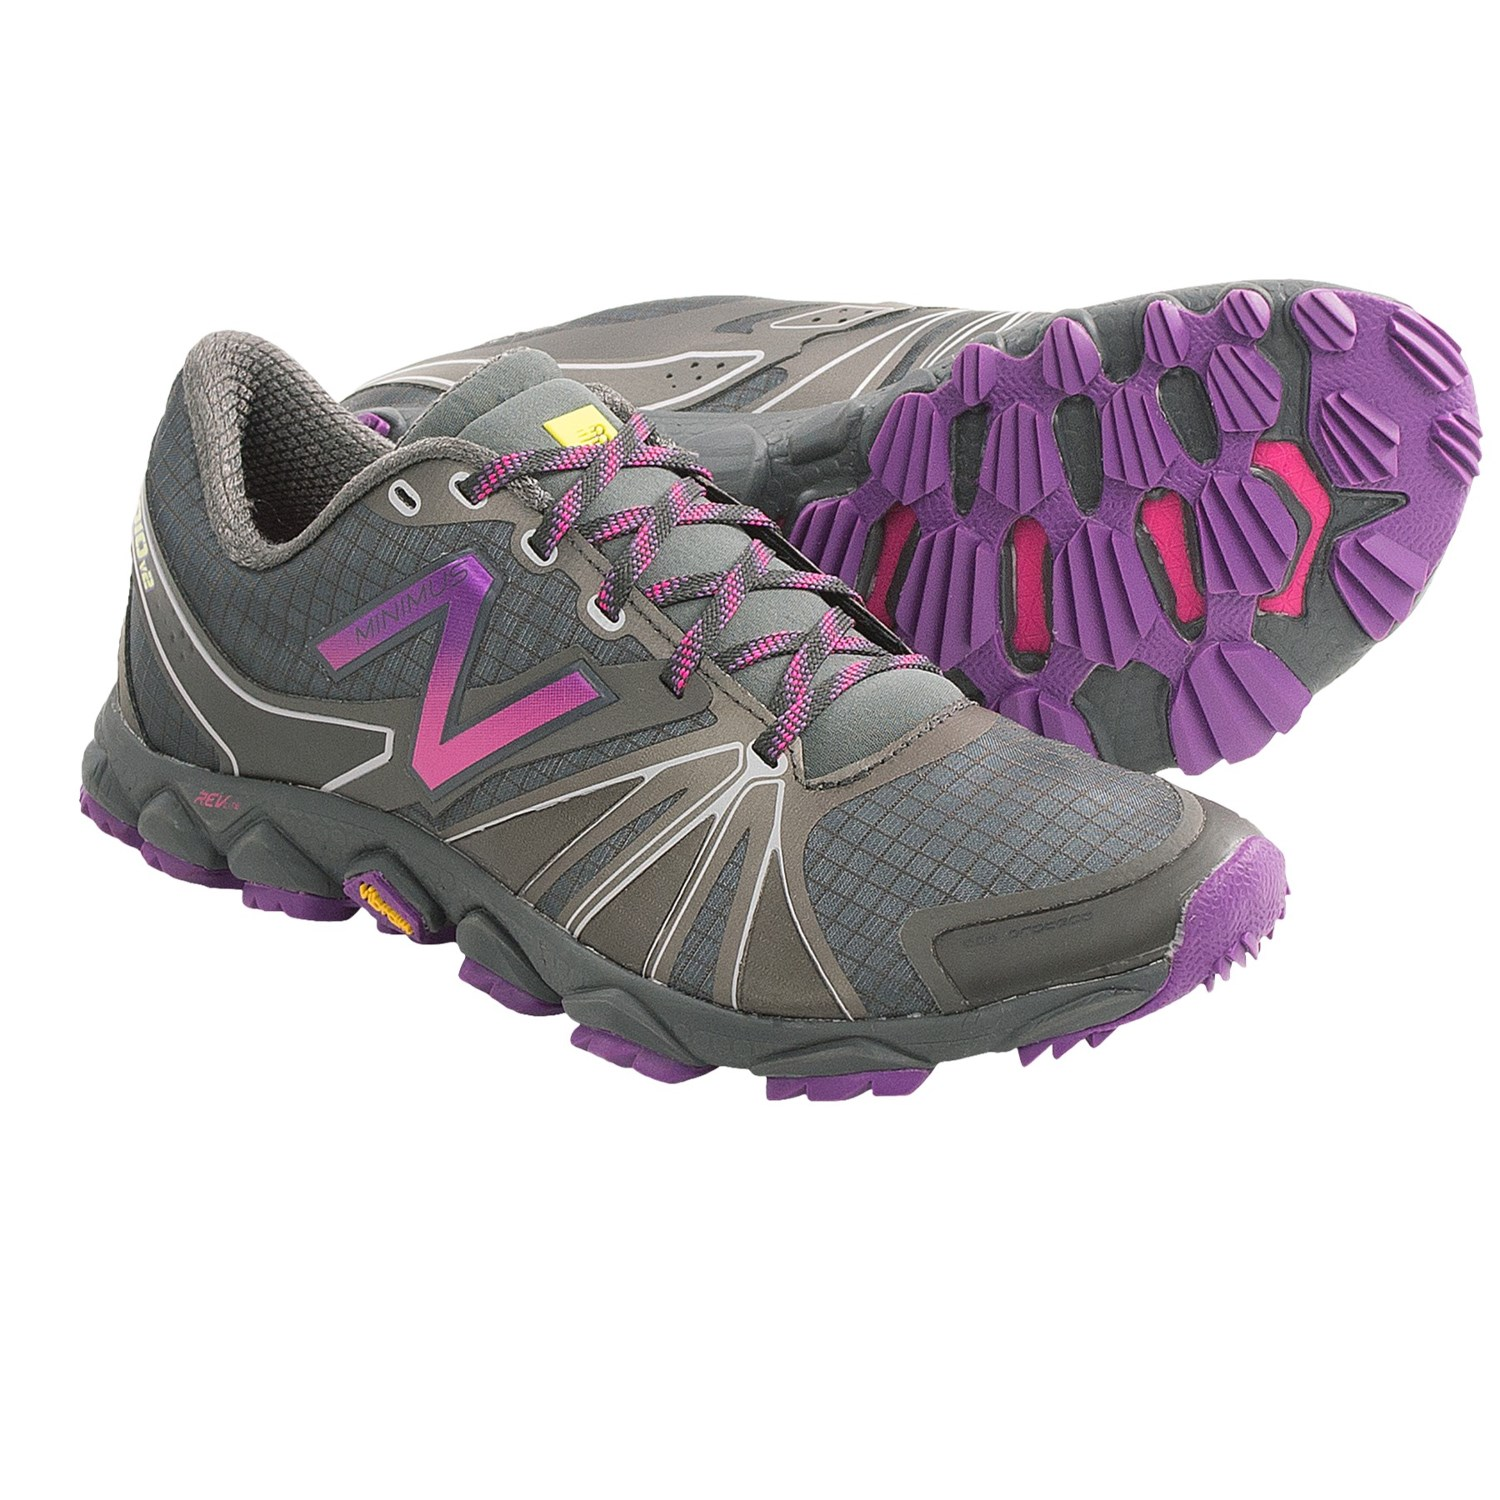 New Balance Minimus 1010v2 Trail Running Shoes - Minimalist (For Women